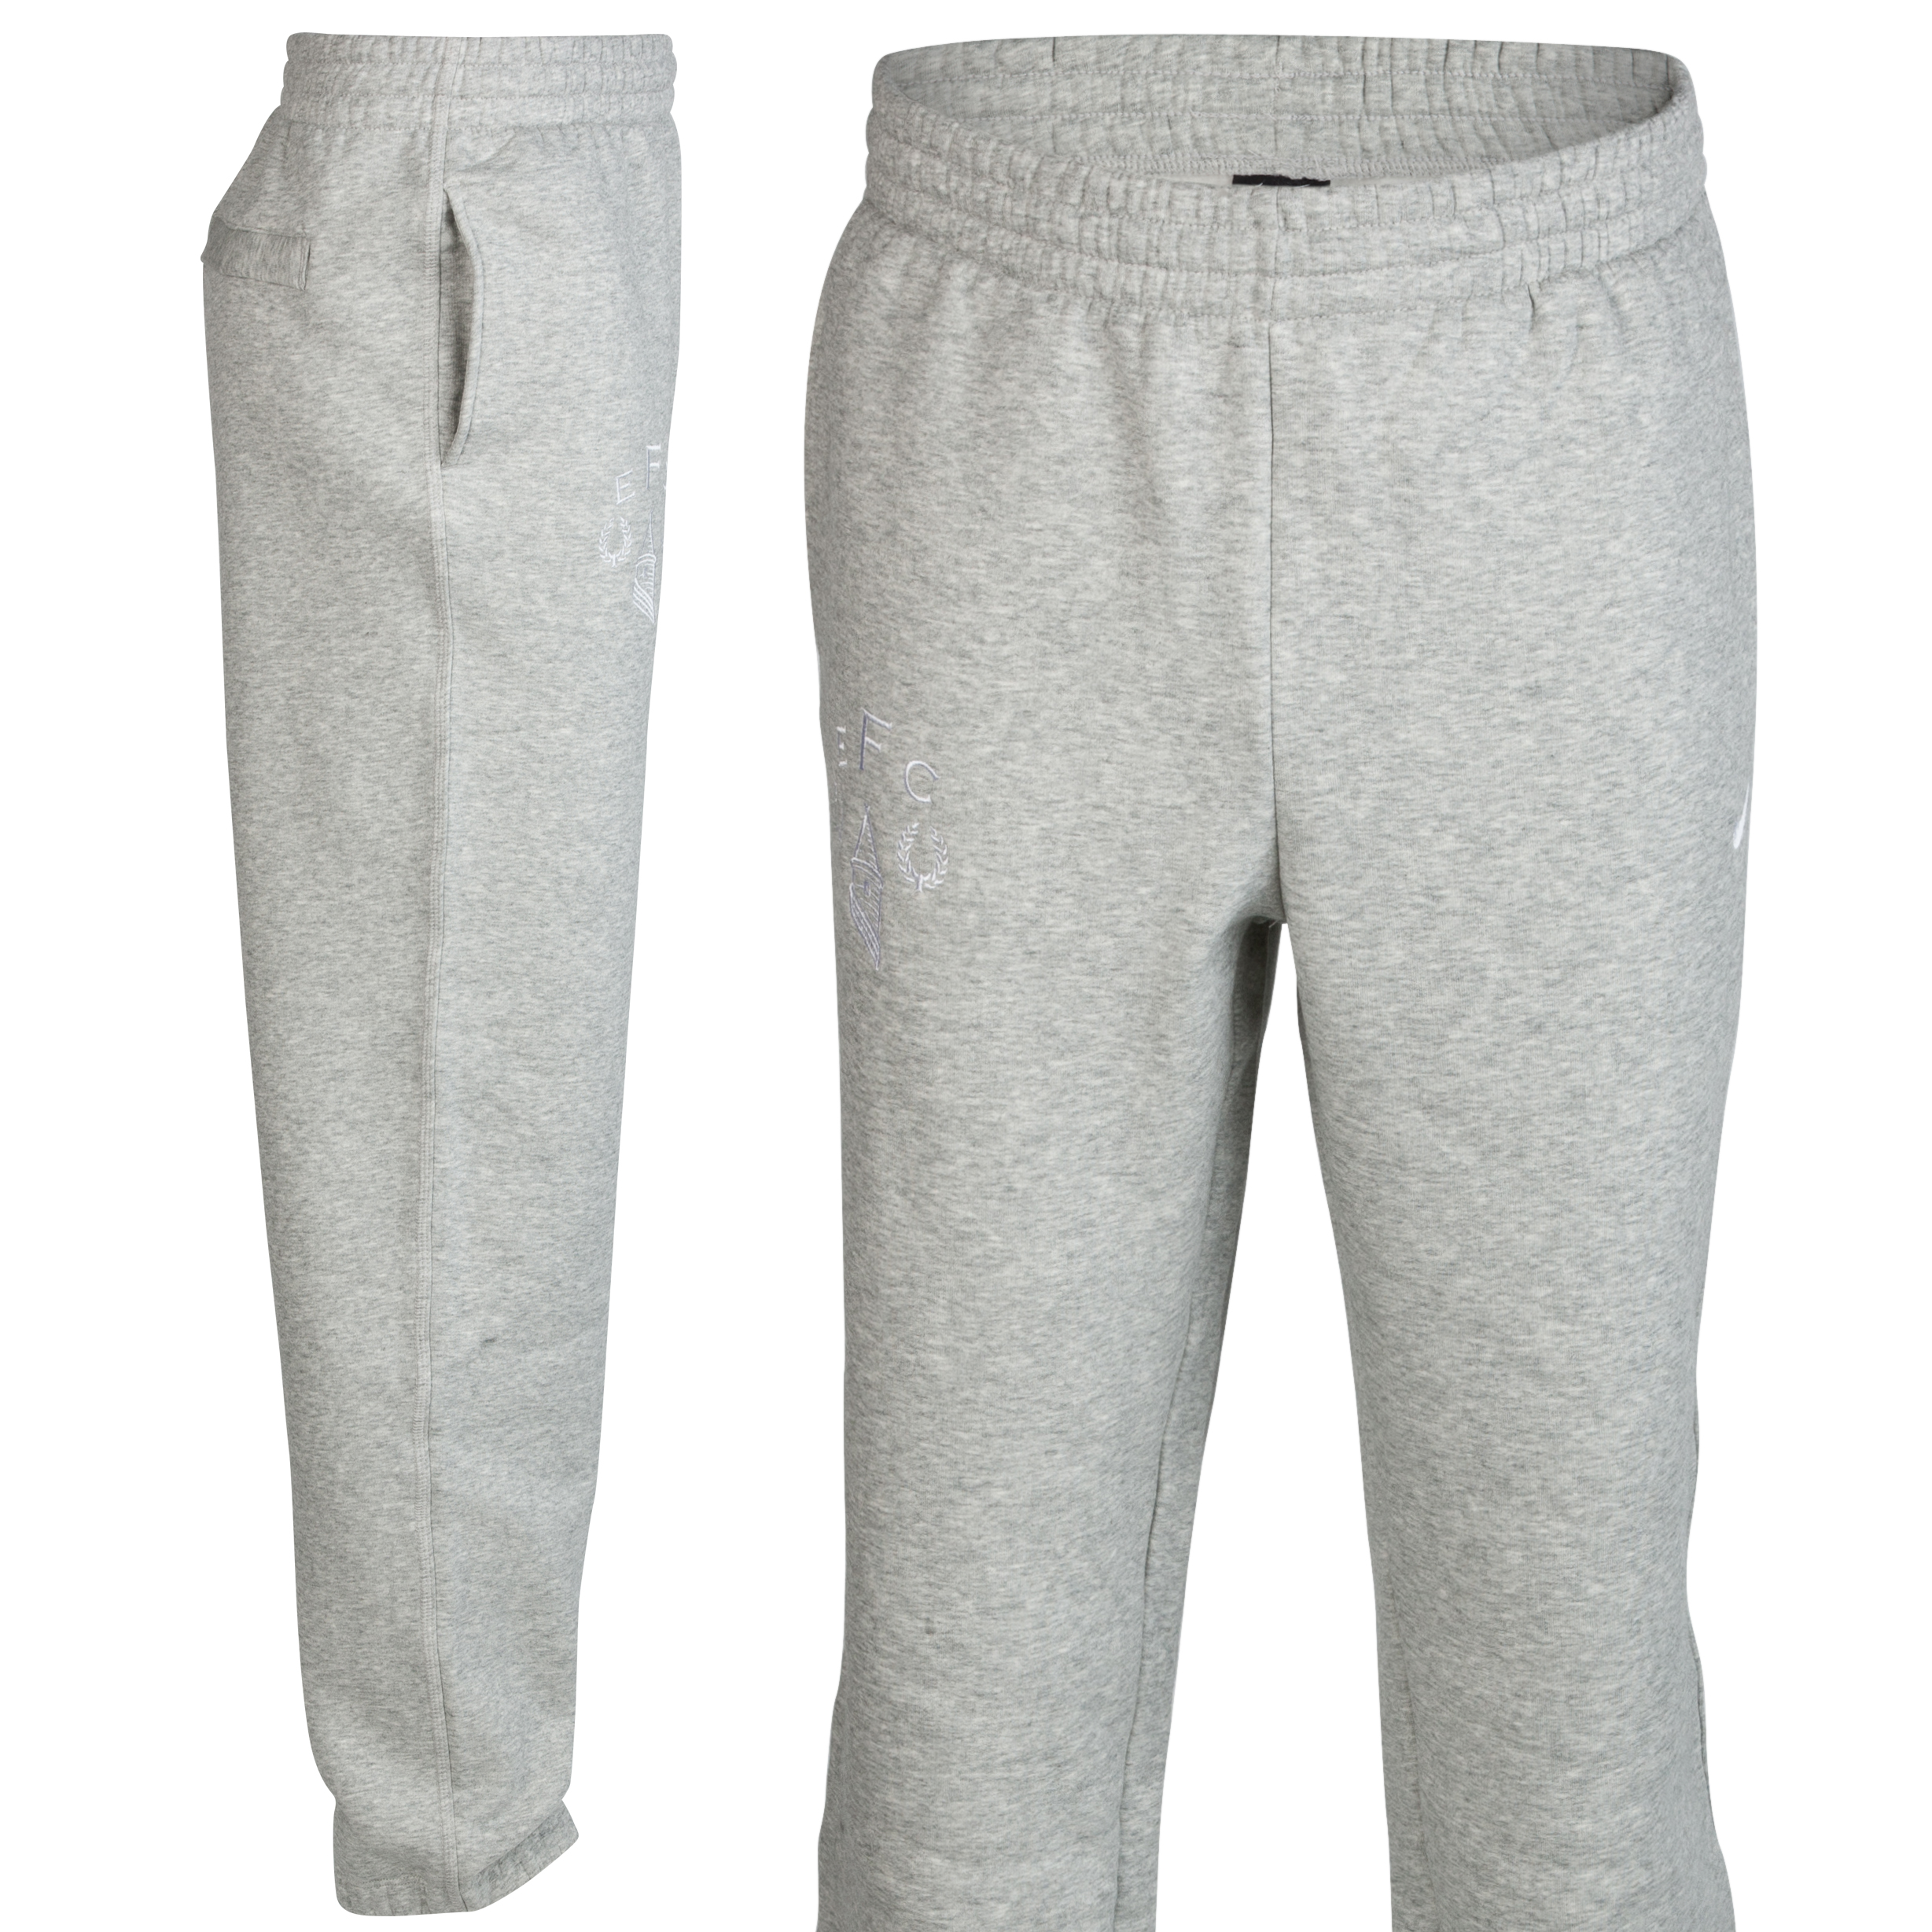 Everton Heritage Fleece Pant - Junior - Grey Heather/White